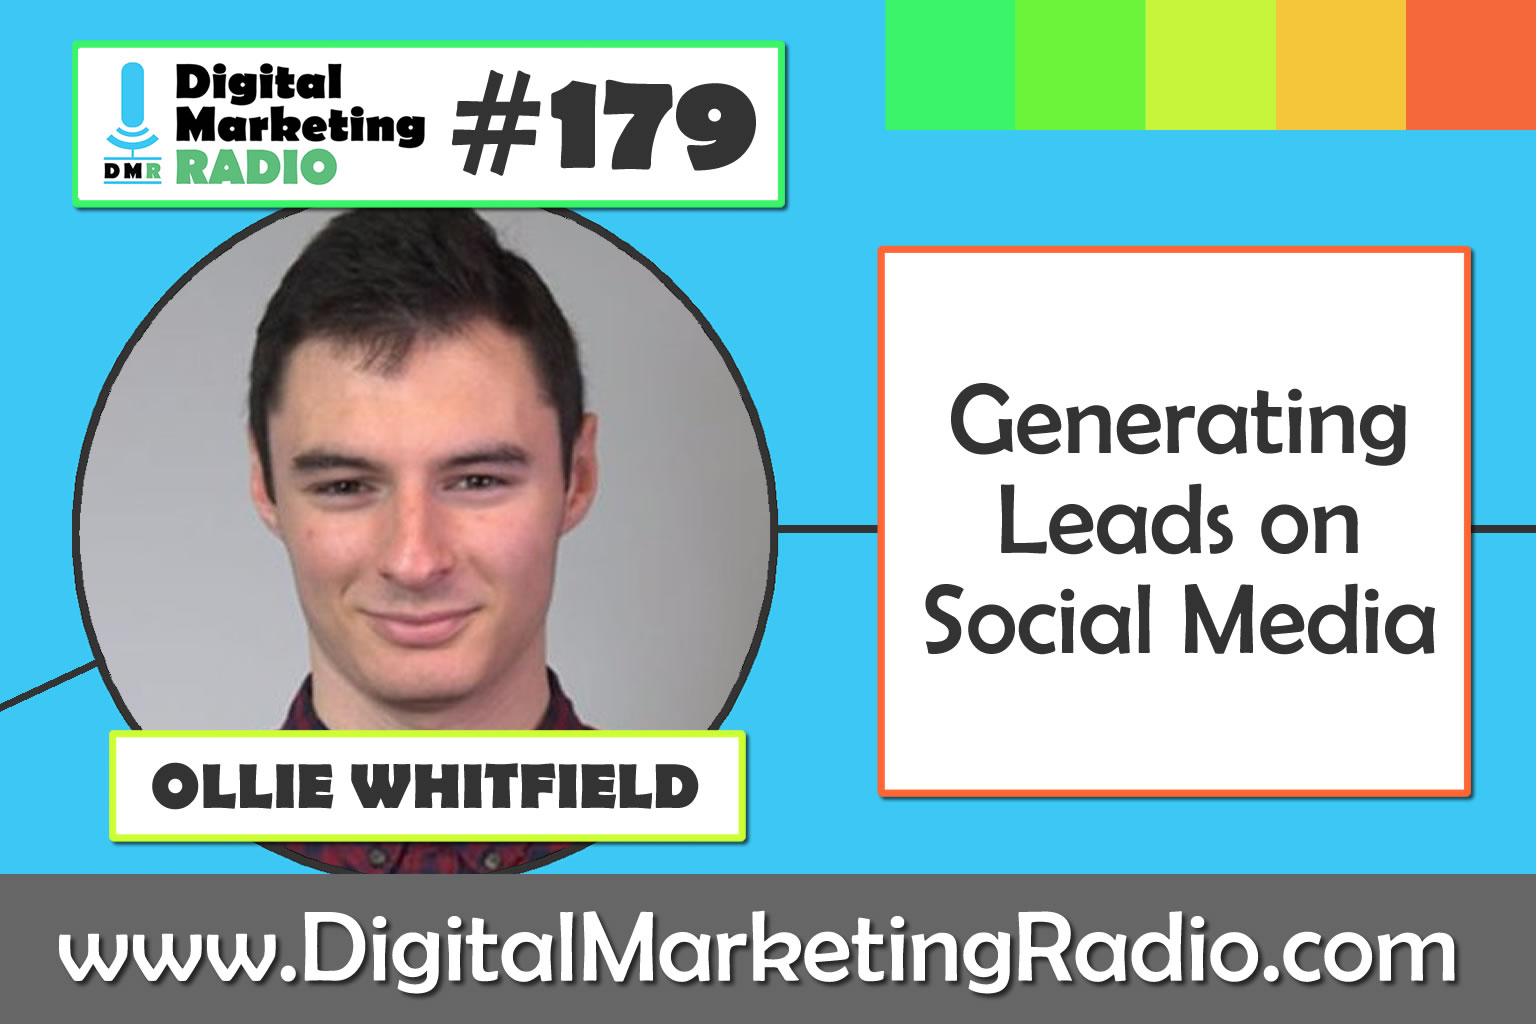 Generating Leads on Social Media - OLLIE WHITFIELD